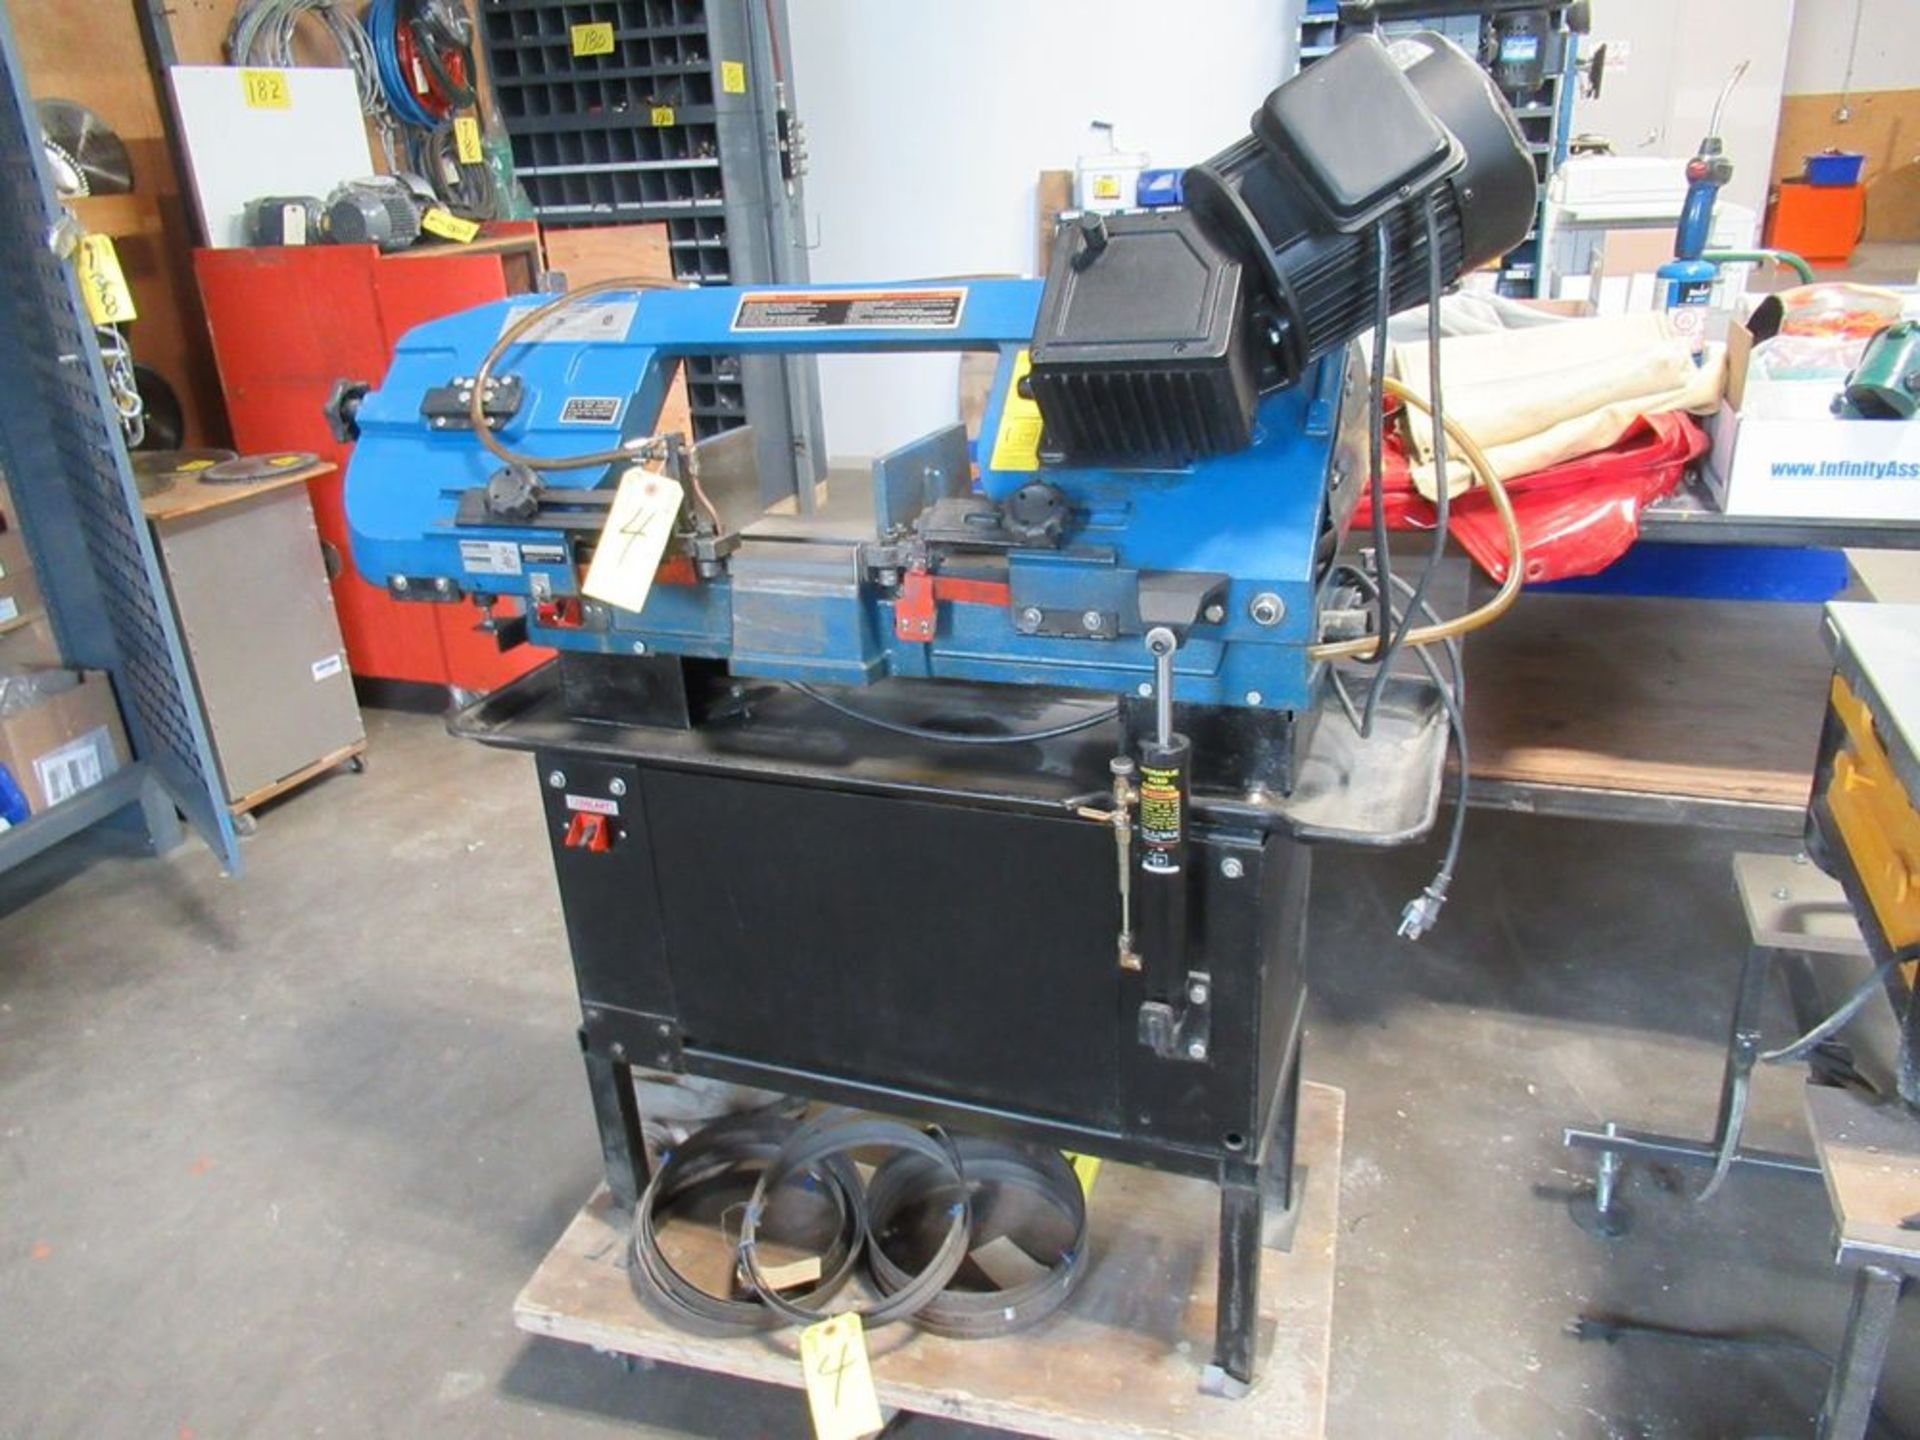 """JET JHVG-712 7"""" X 12"""" 3-SPEED HORIZONTAL BANDSAW W/ SAW BLADES AND ROLLER STAND, S/N 14071991 - Image 2 of 5"""